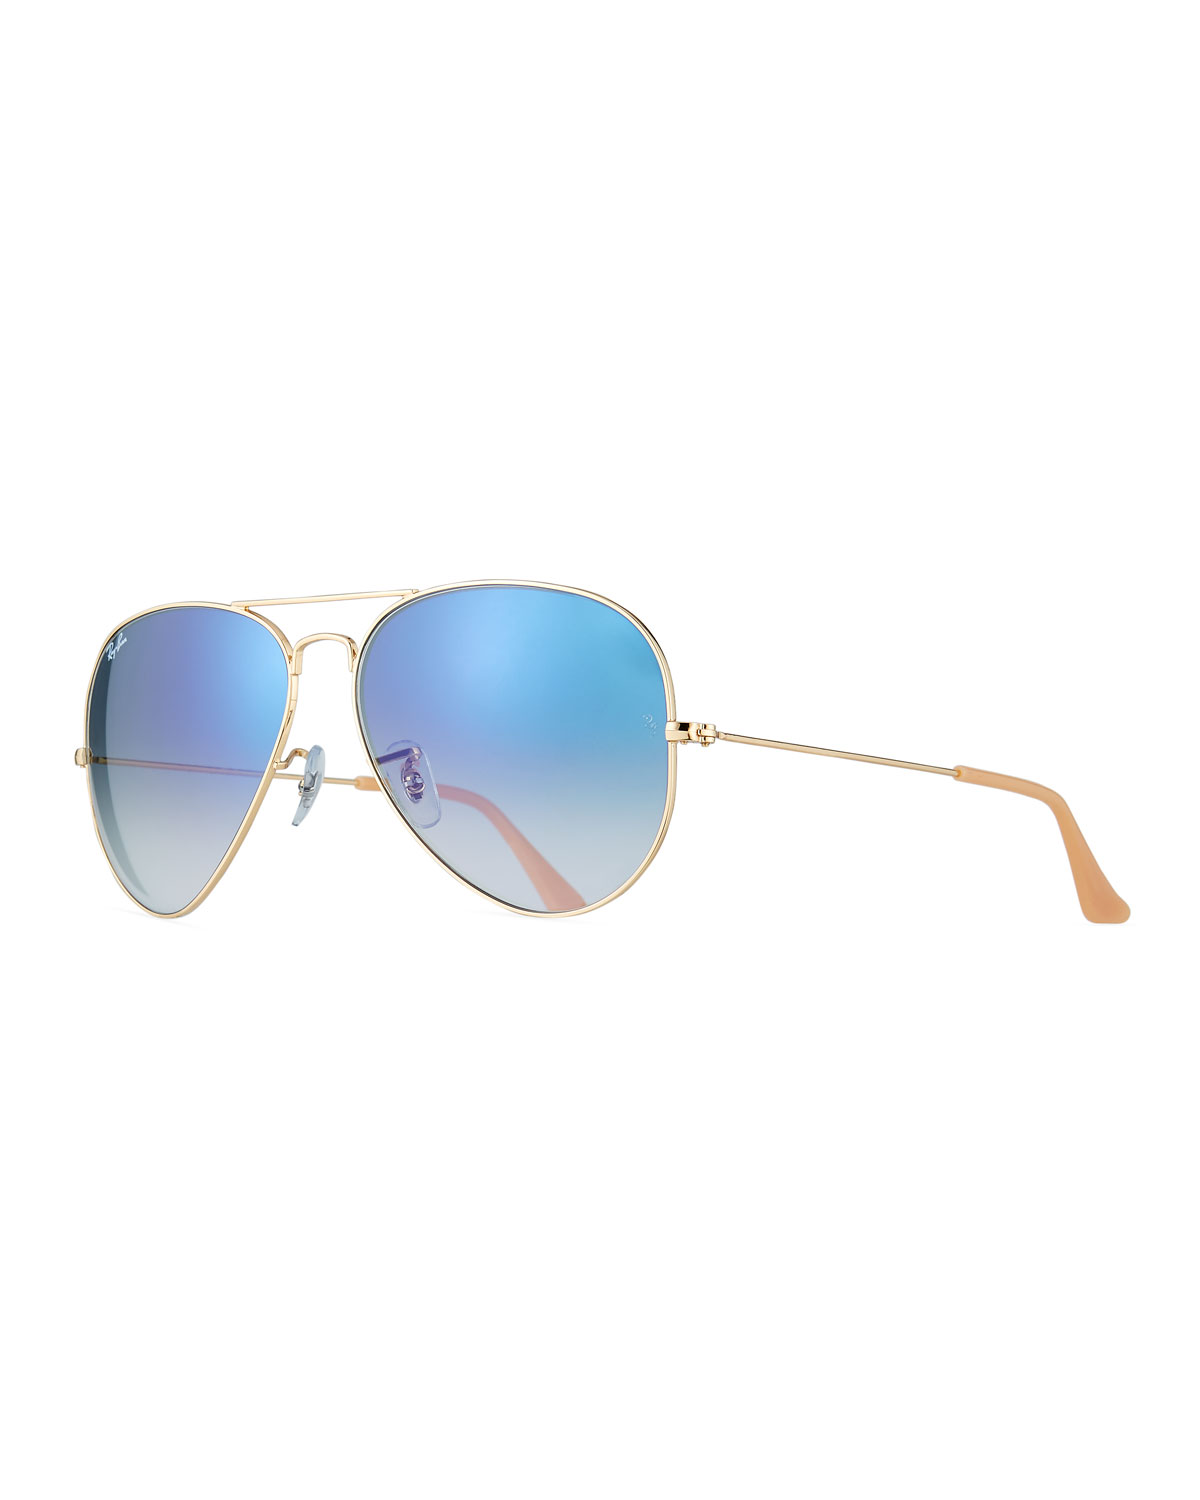 c81a191a748c2 Ray-Ban Gradient Aviator Sunglasses